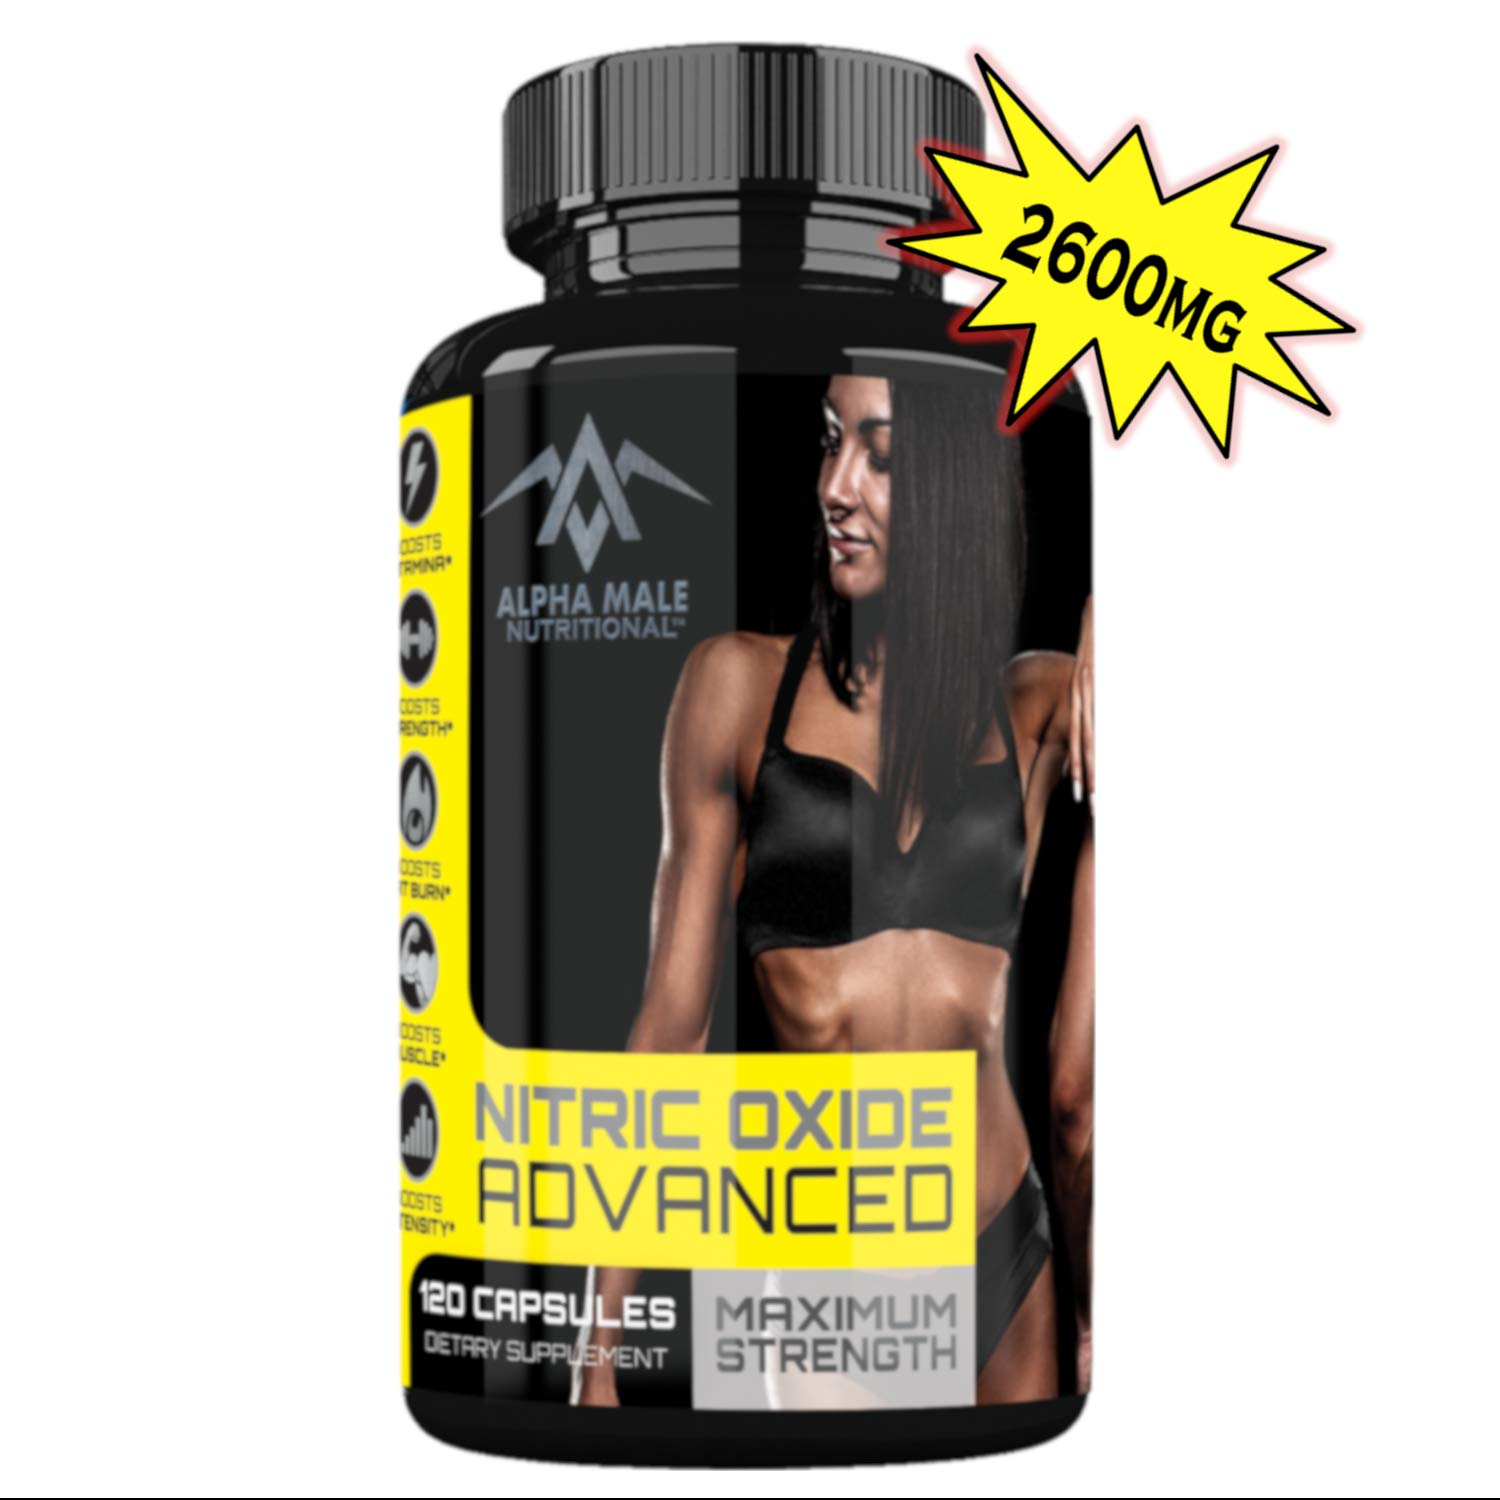 Alpha Male Nitric Oxide Advanced - Our Most Powerful 2600MG Advanced Nitric Oxide Booster and Muscle Builder for Strength, Energy, Blood Flow, weight loss and Endurance - 120 Capsules by Alpha Male Nutritional